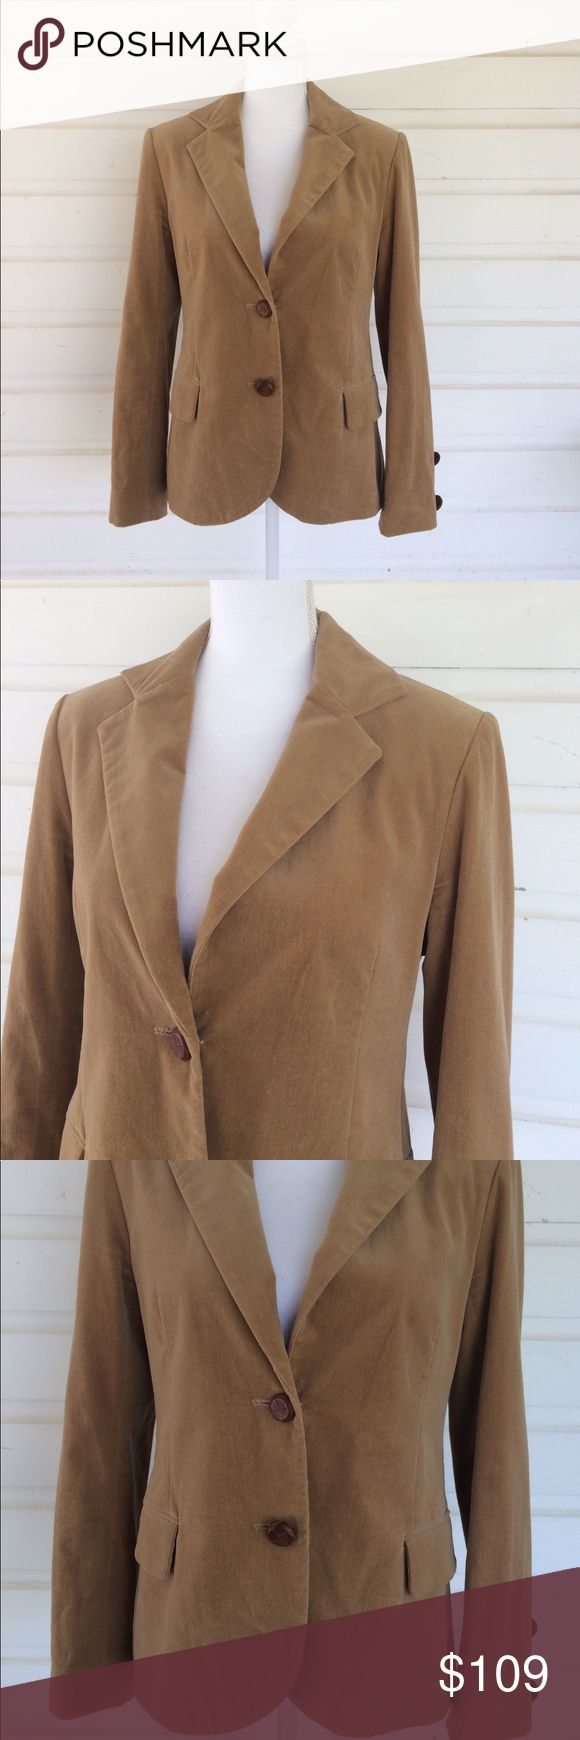 Anthro Lauren Moffatt Velvet Camel Blazer Scrumptiously preppy in all the right ways. Great for a polo game in chilly weather, a sophisticated school girl look (who doesn't want to channel Hermonie?) Excellent condition with cool leather button details. Dark tan, coffee camel color. Size large. Beautiful! Anthropologie Jackets & Coats Blazers